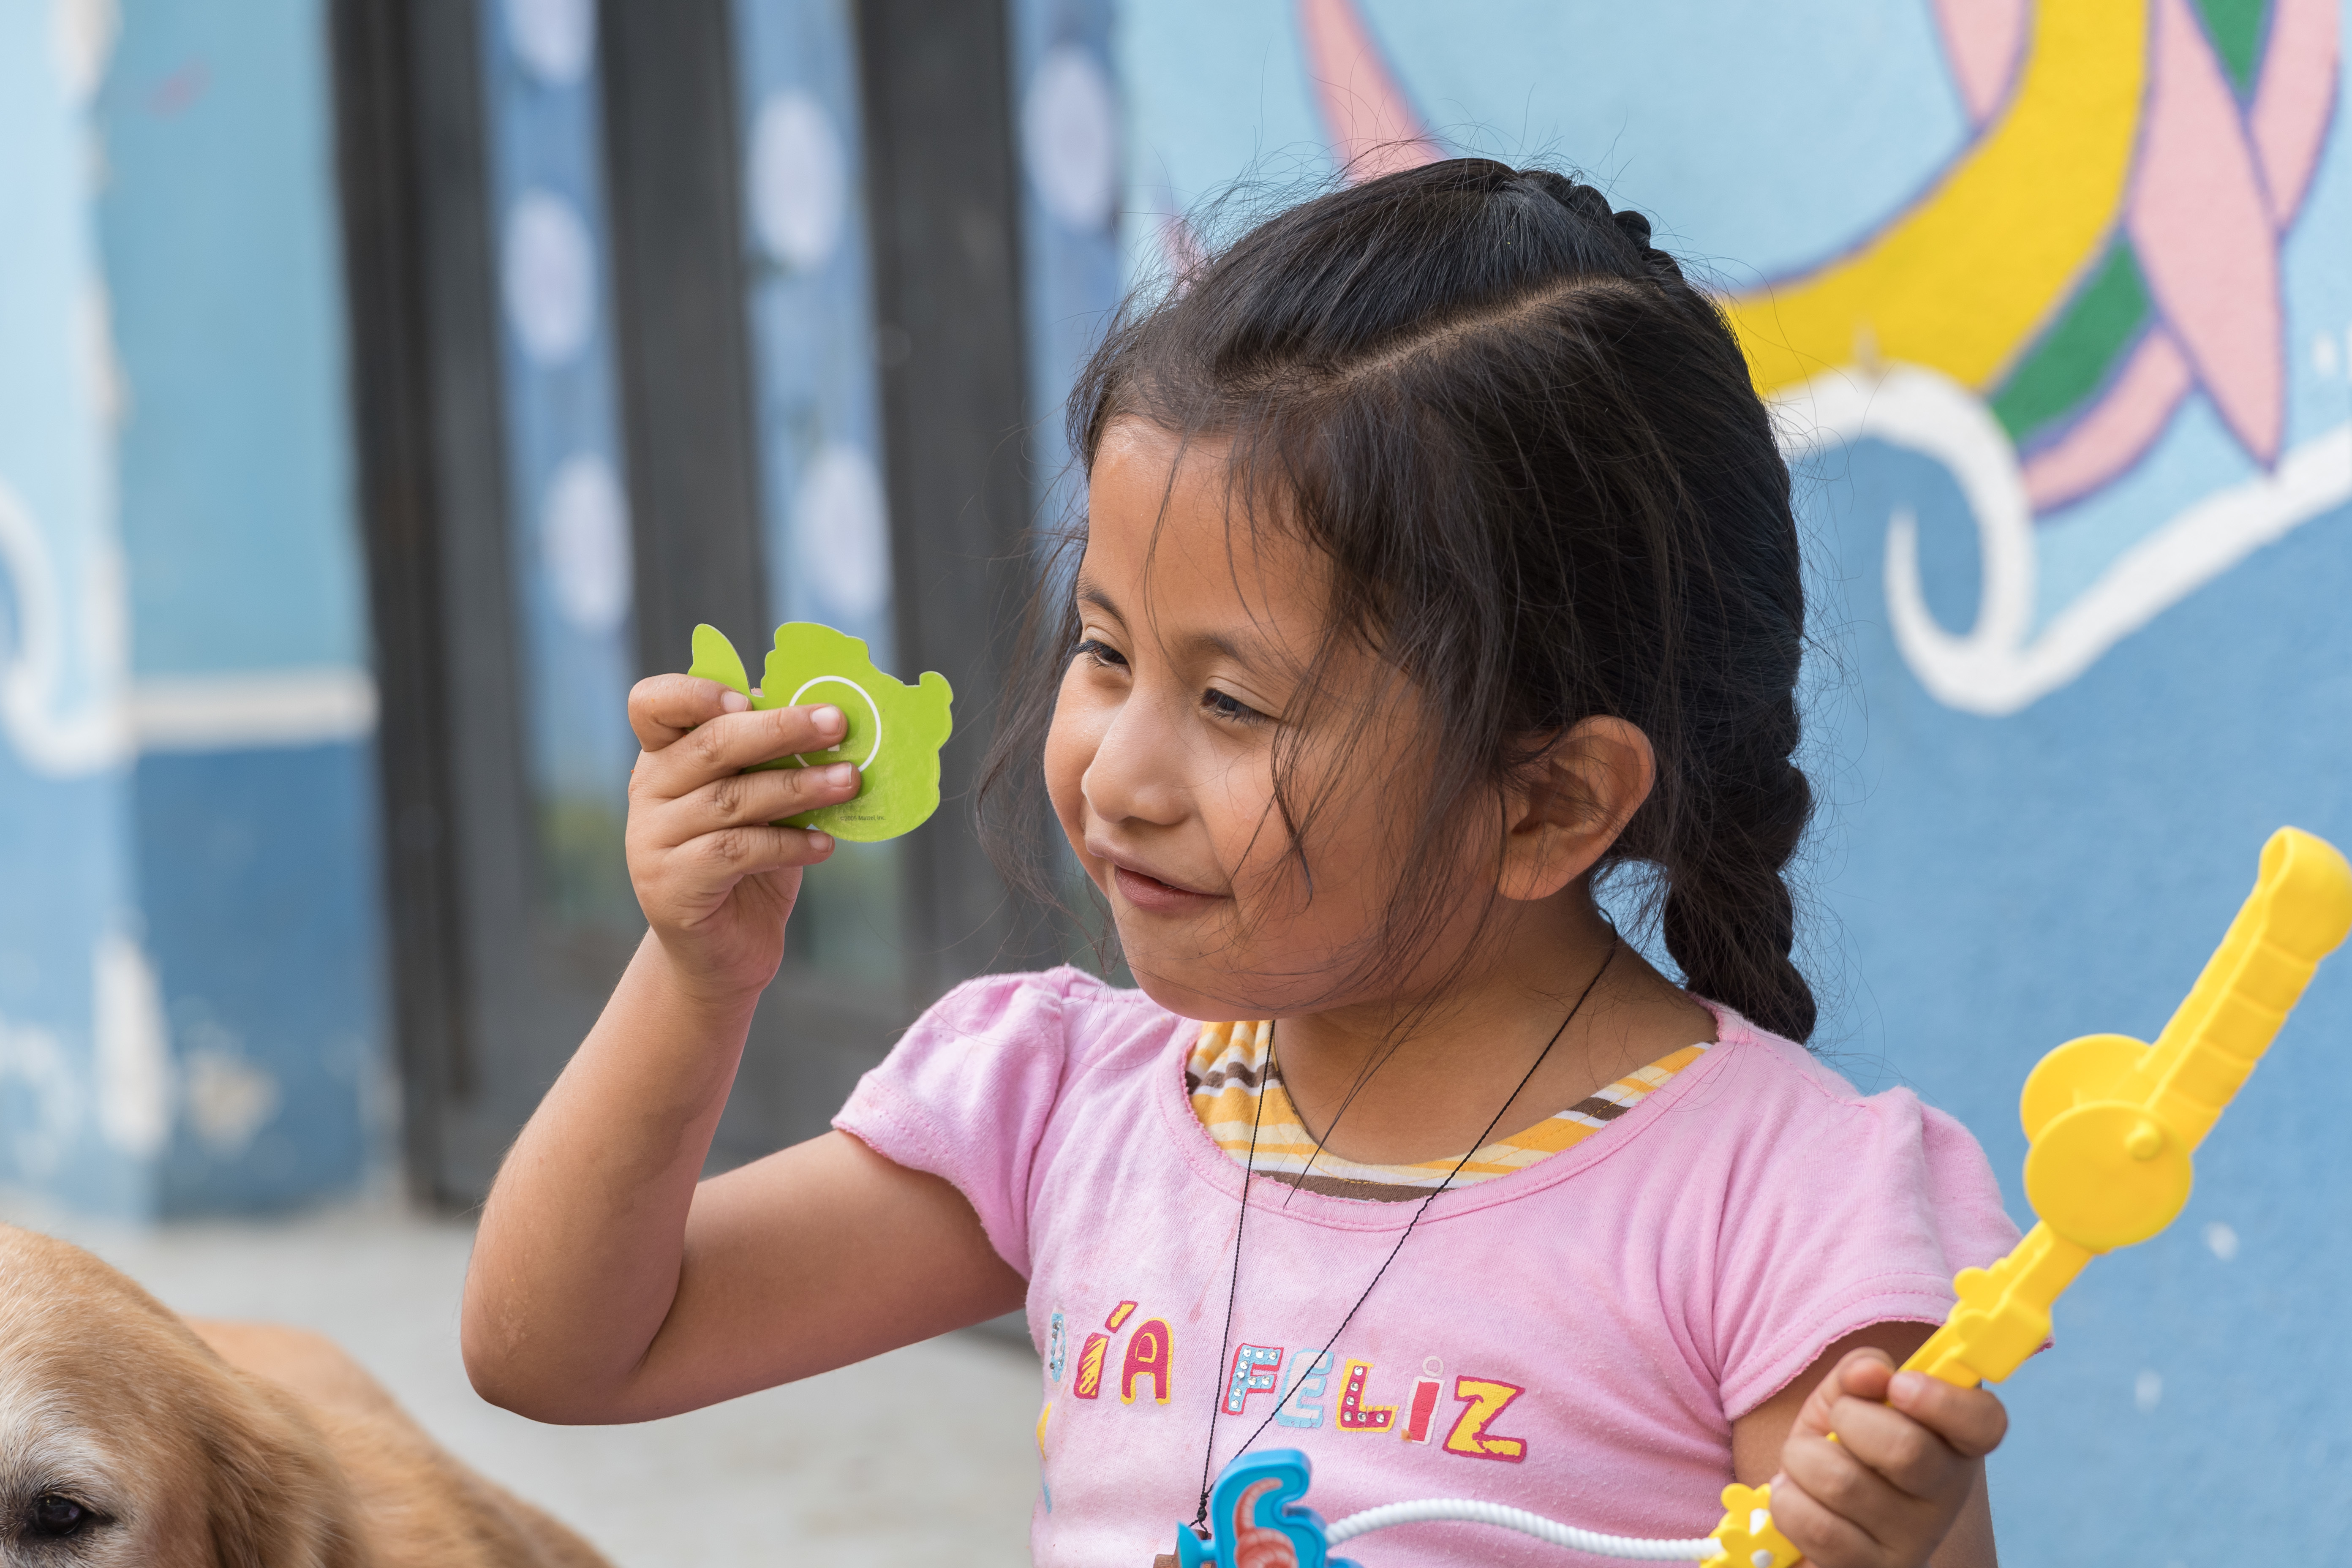 A young girl looks closely at a small green object in her hand